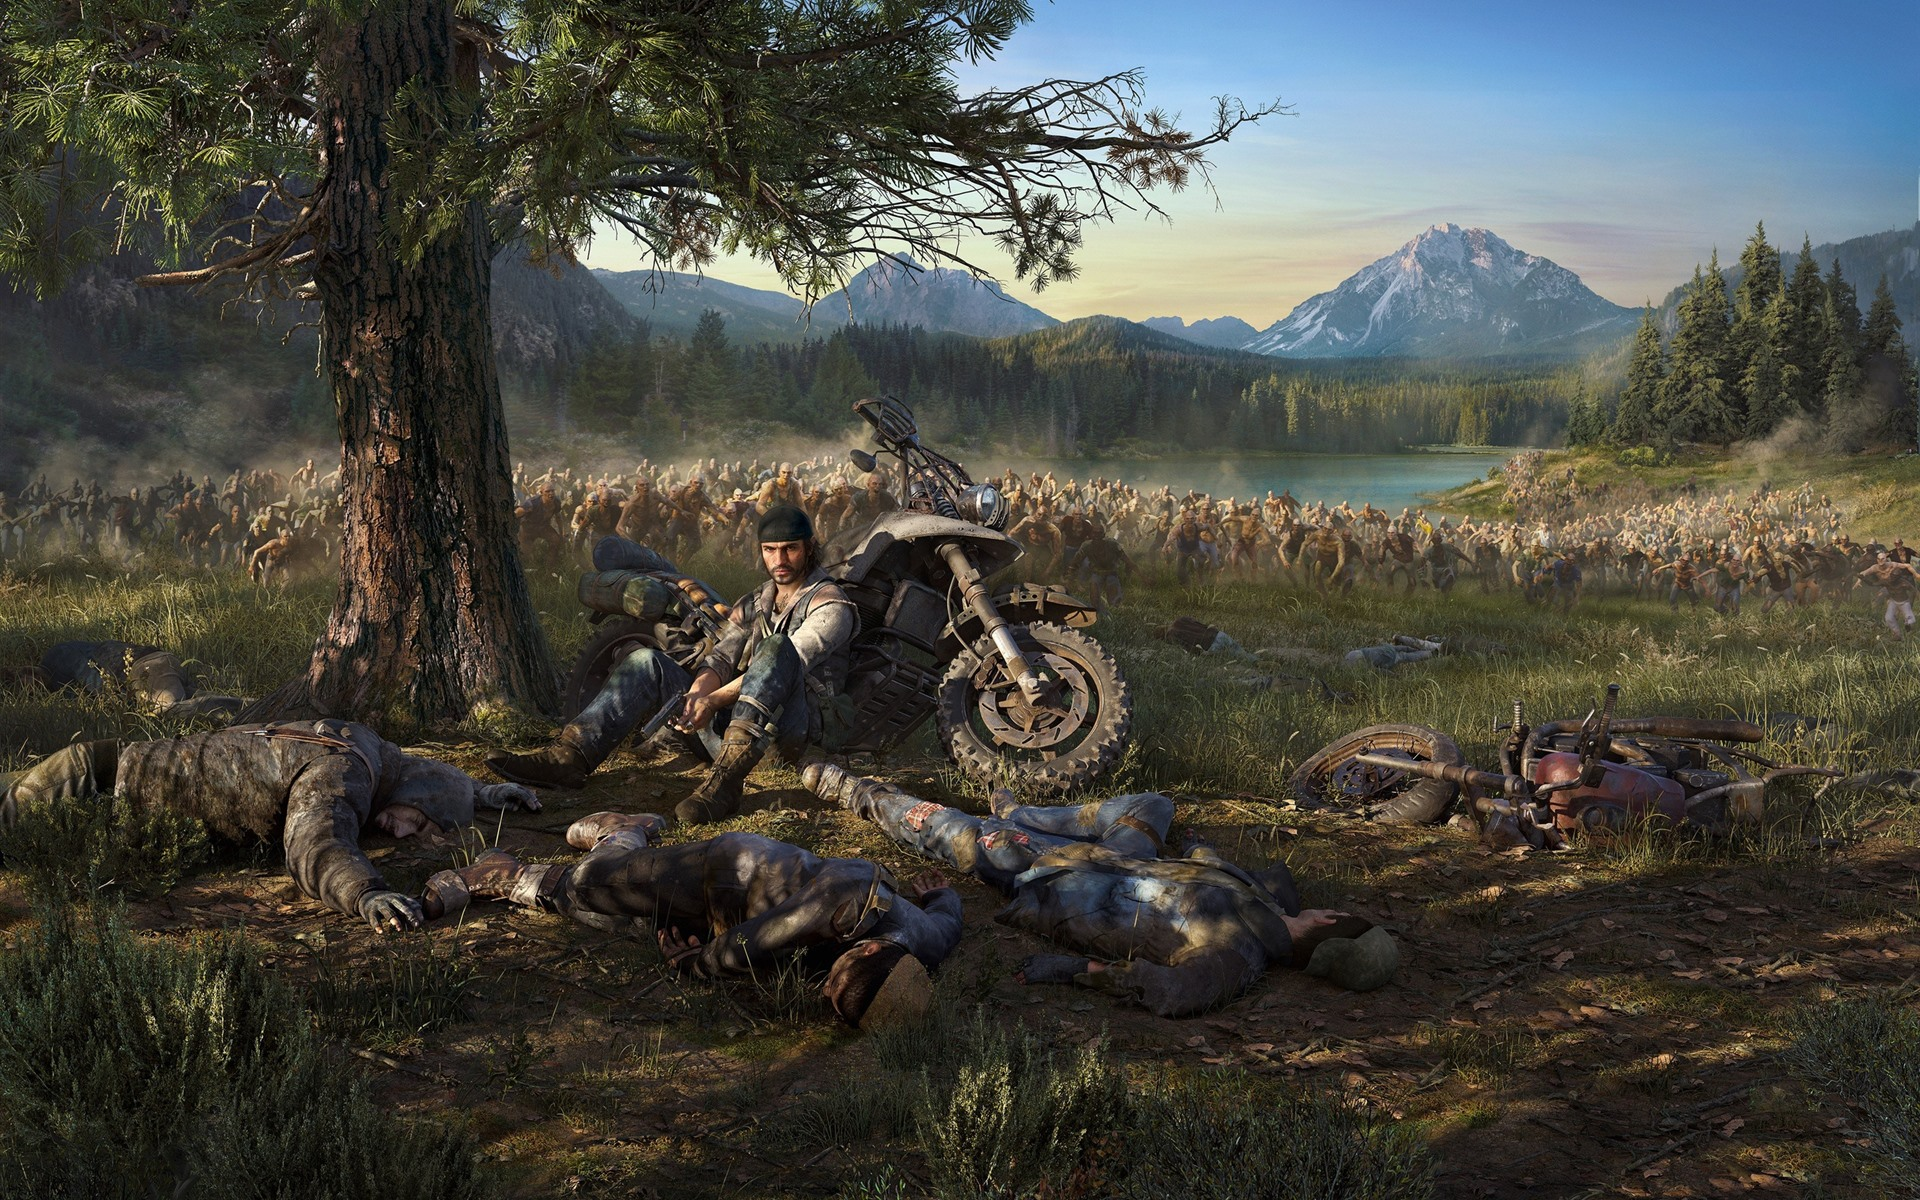 Wallpaper PS4 game, Days Gone 2560x1600 HD Picture, Image